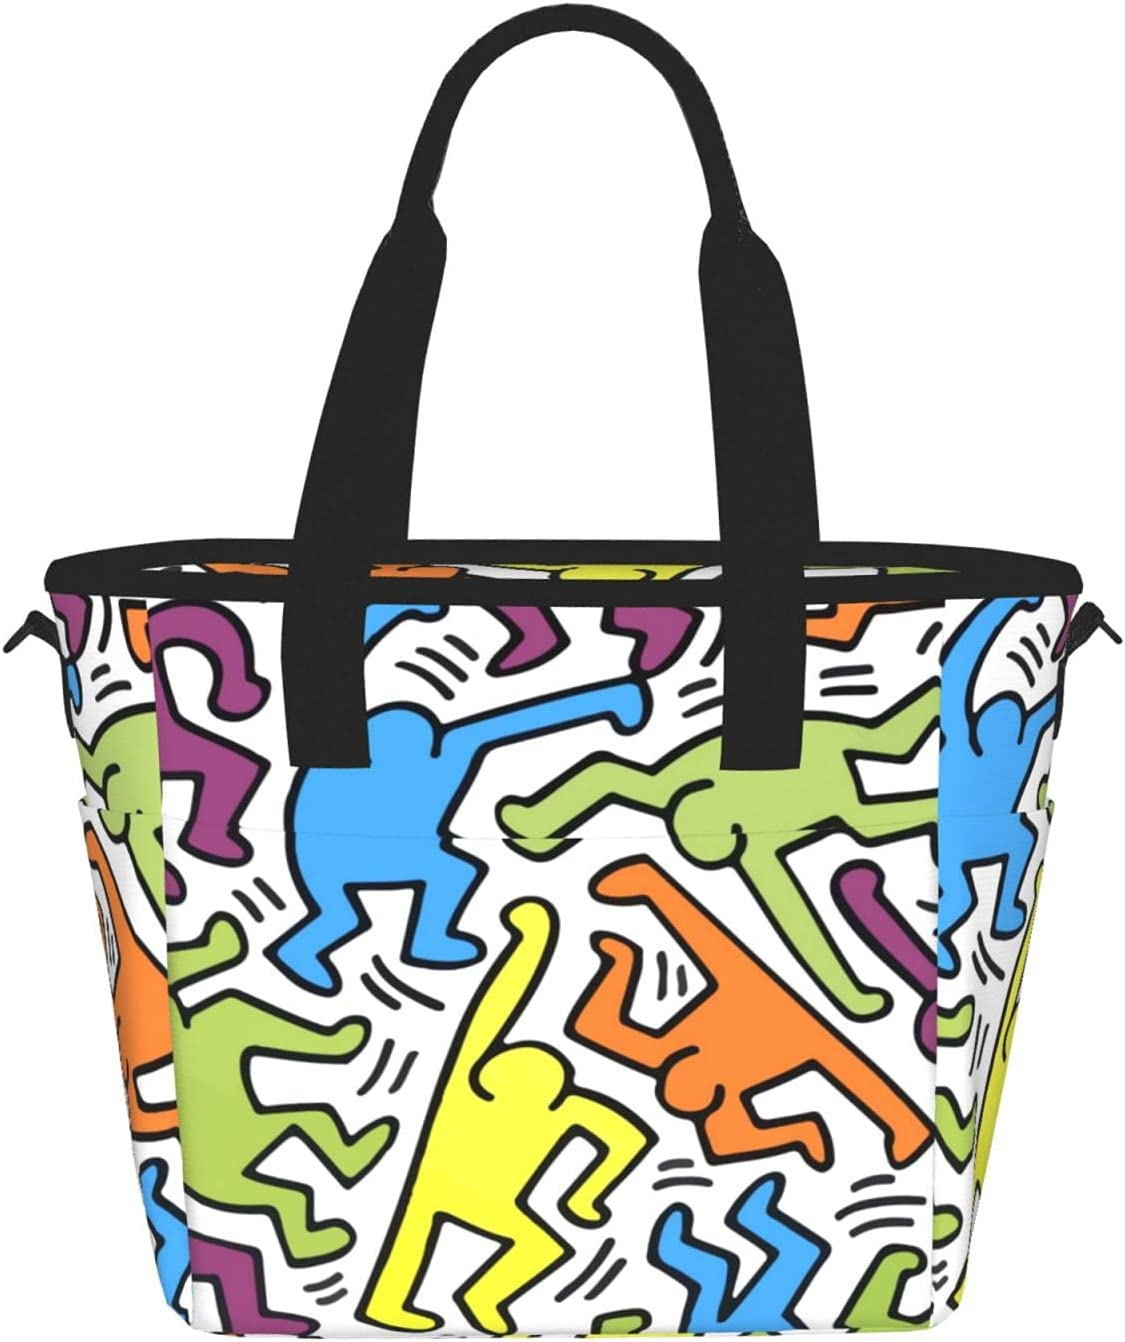 Los Angeles Mall Cool Graffiti Art Reusable Insulated Bag Lunch Contain Food Tote lowest price